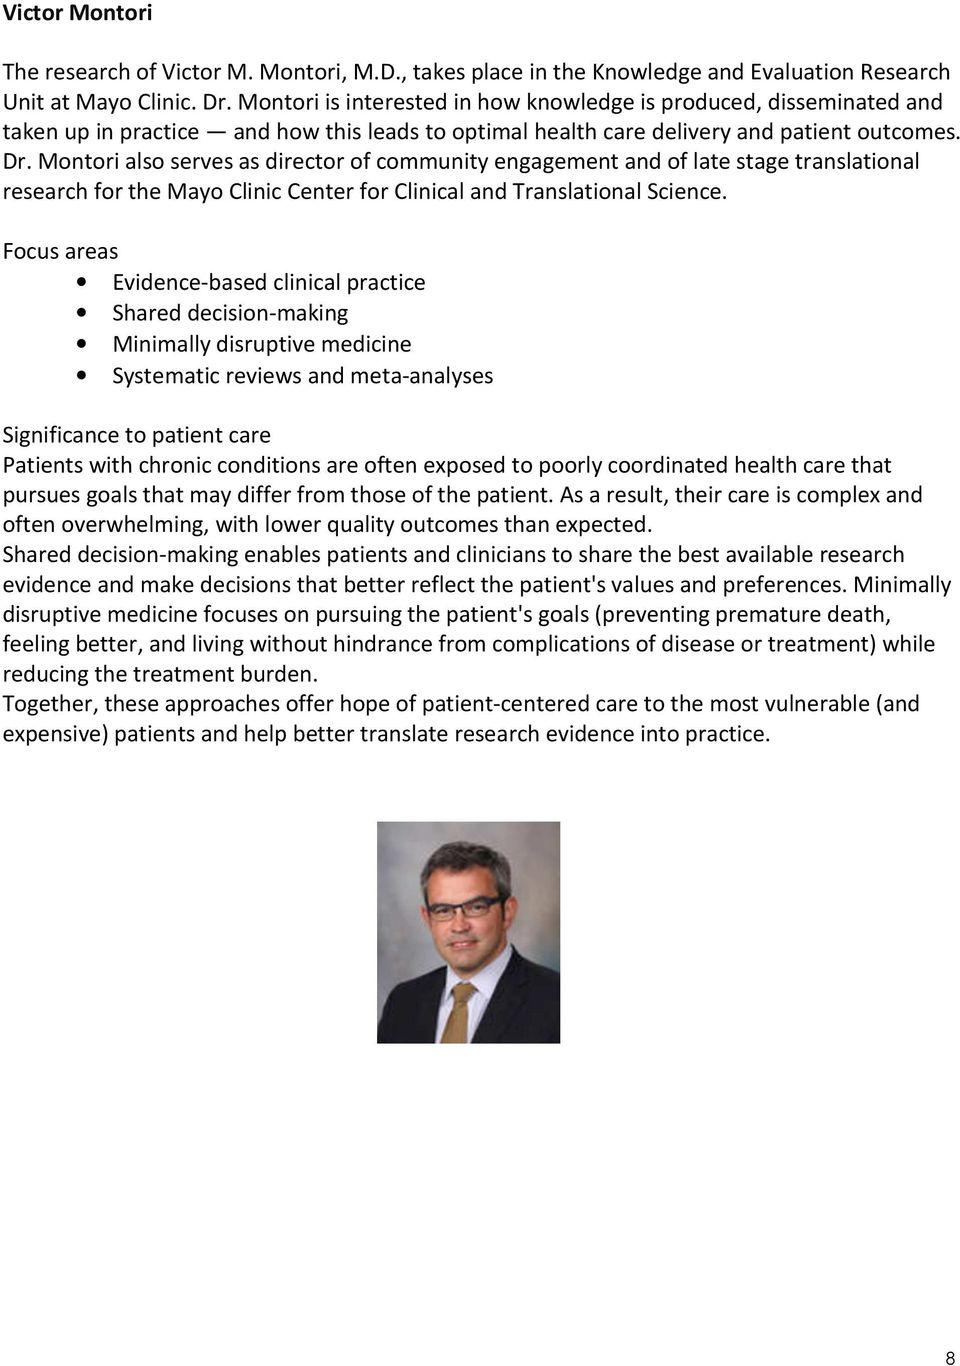 Montori also serves as director of community engagement and of late stage translational research for the Mayo Clinic Center for Clinical and Translational Science.